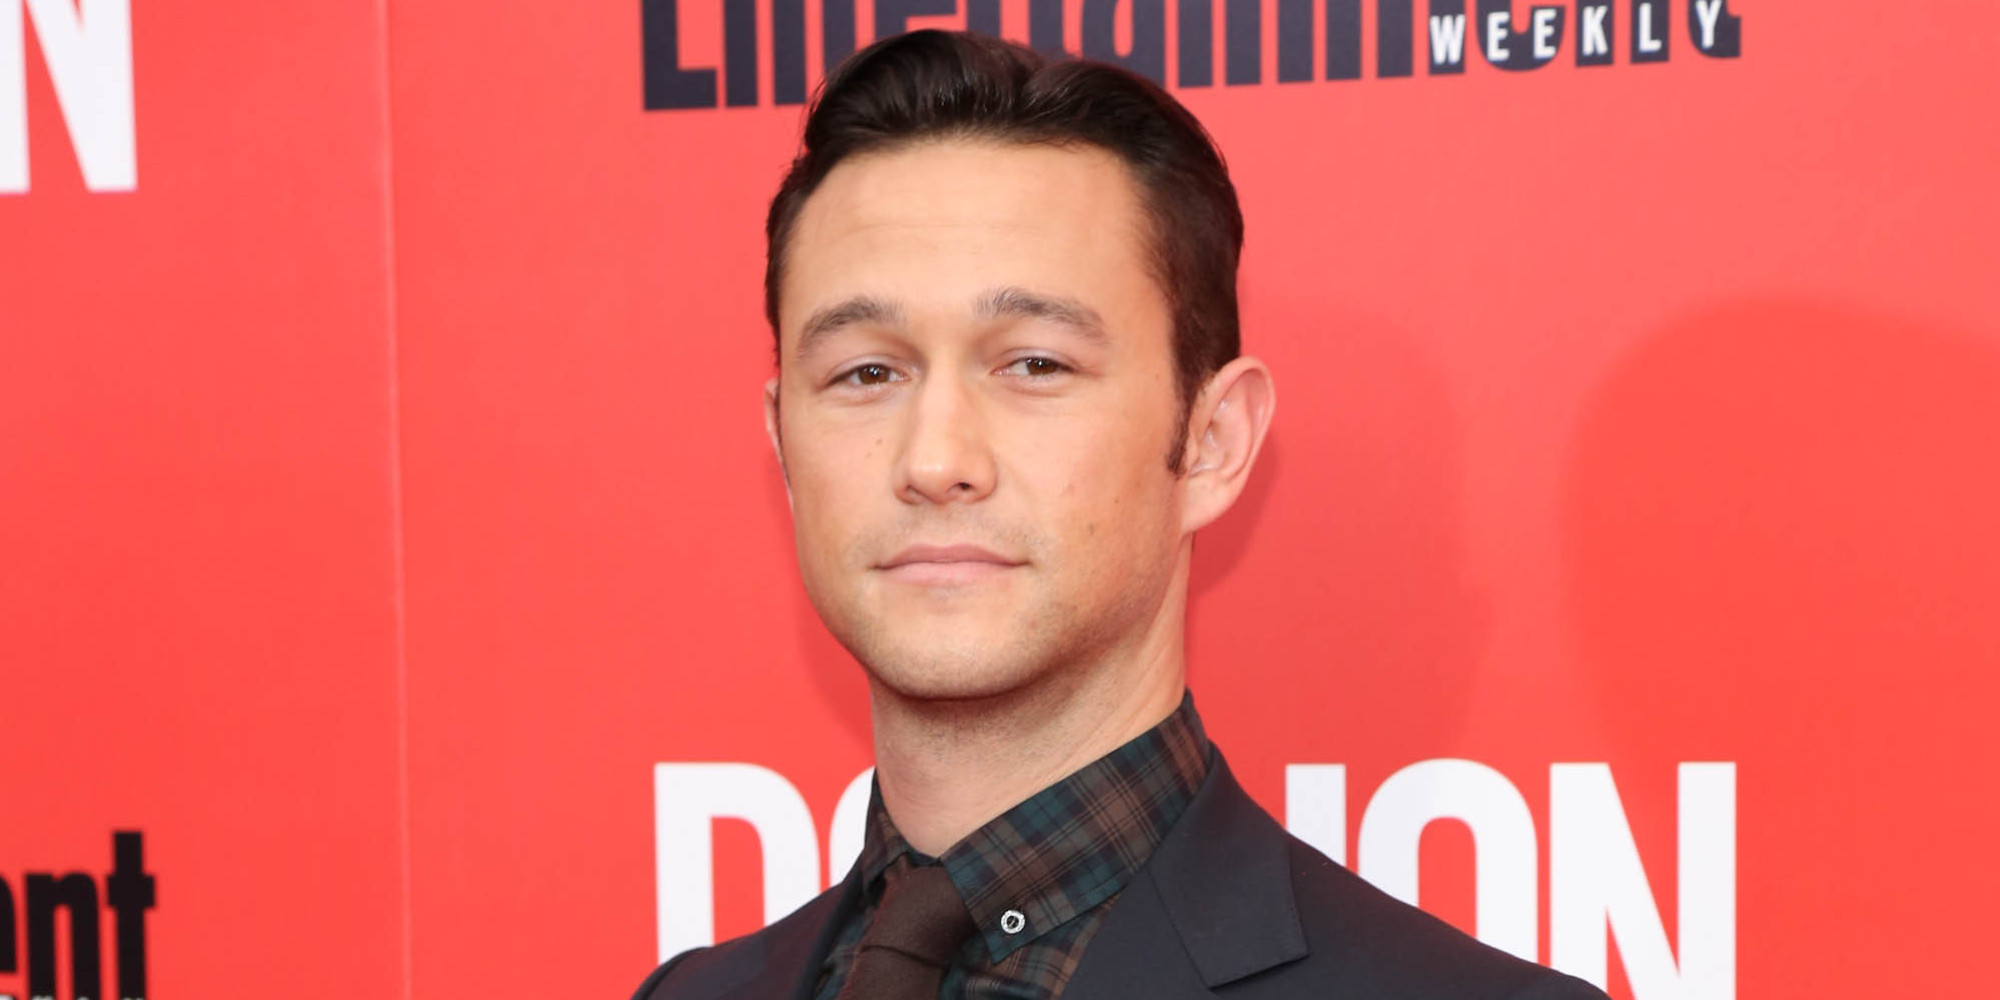 Joseph Gordon Levitt: Joseph Gordon-Levitt Is Going To Star In The 'Fraggle Rock